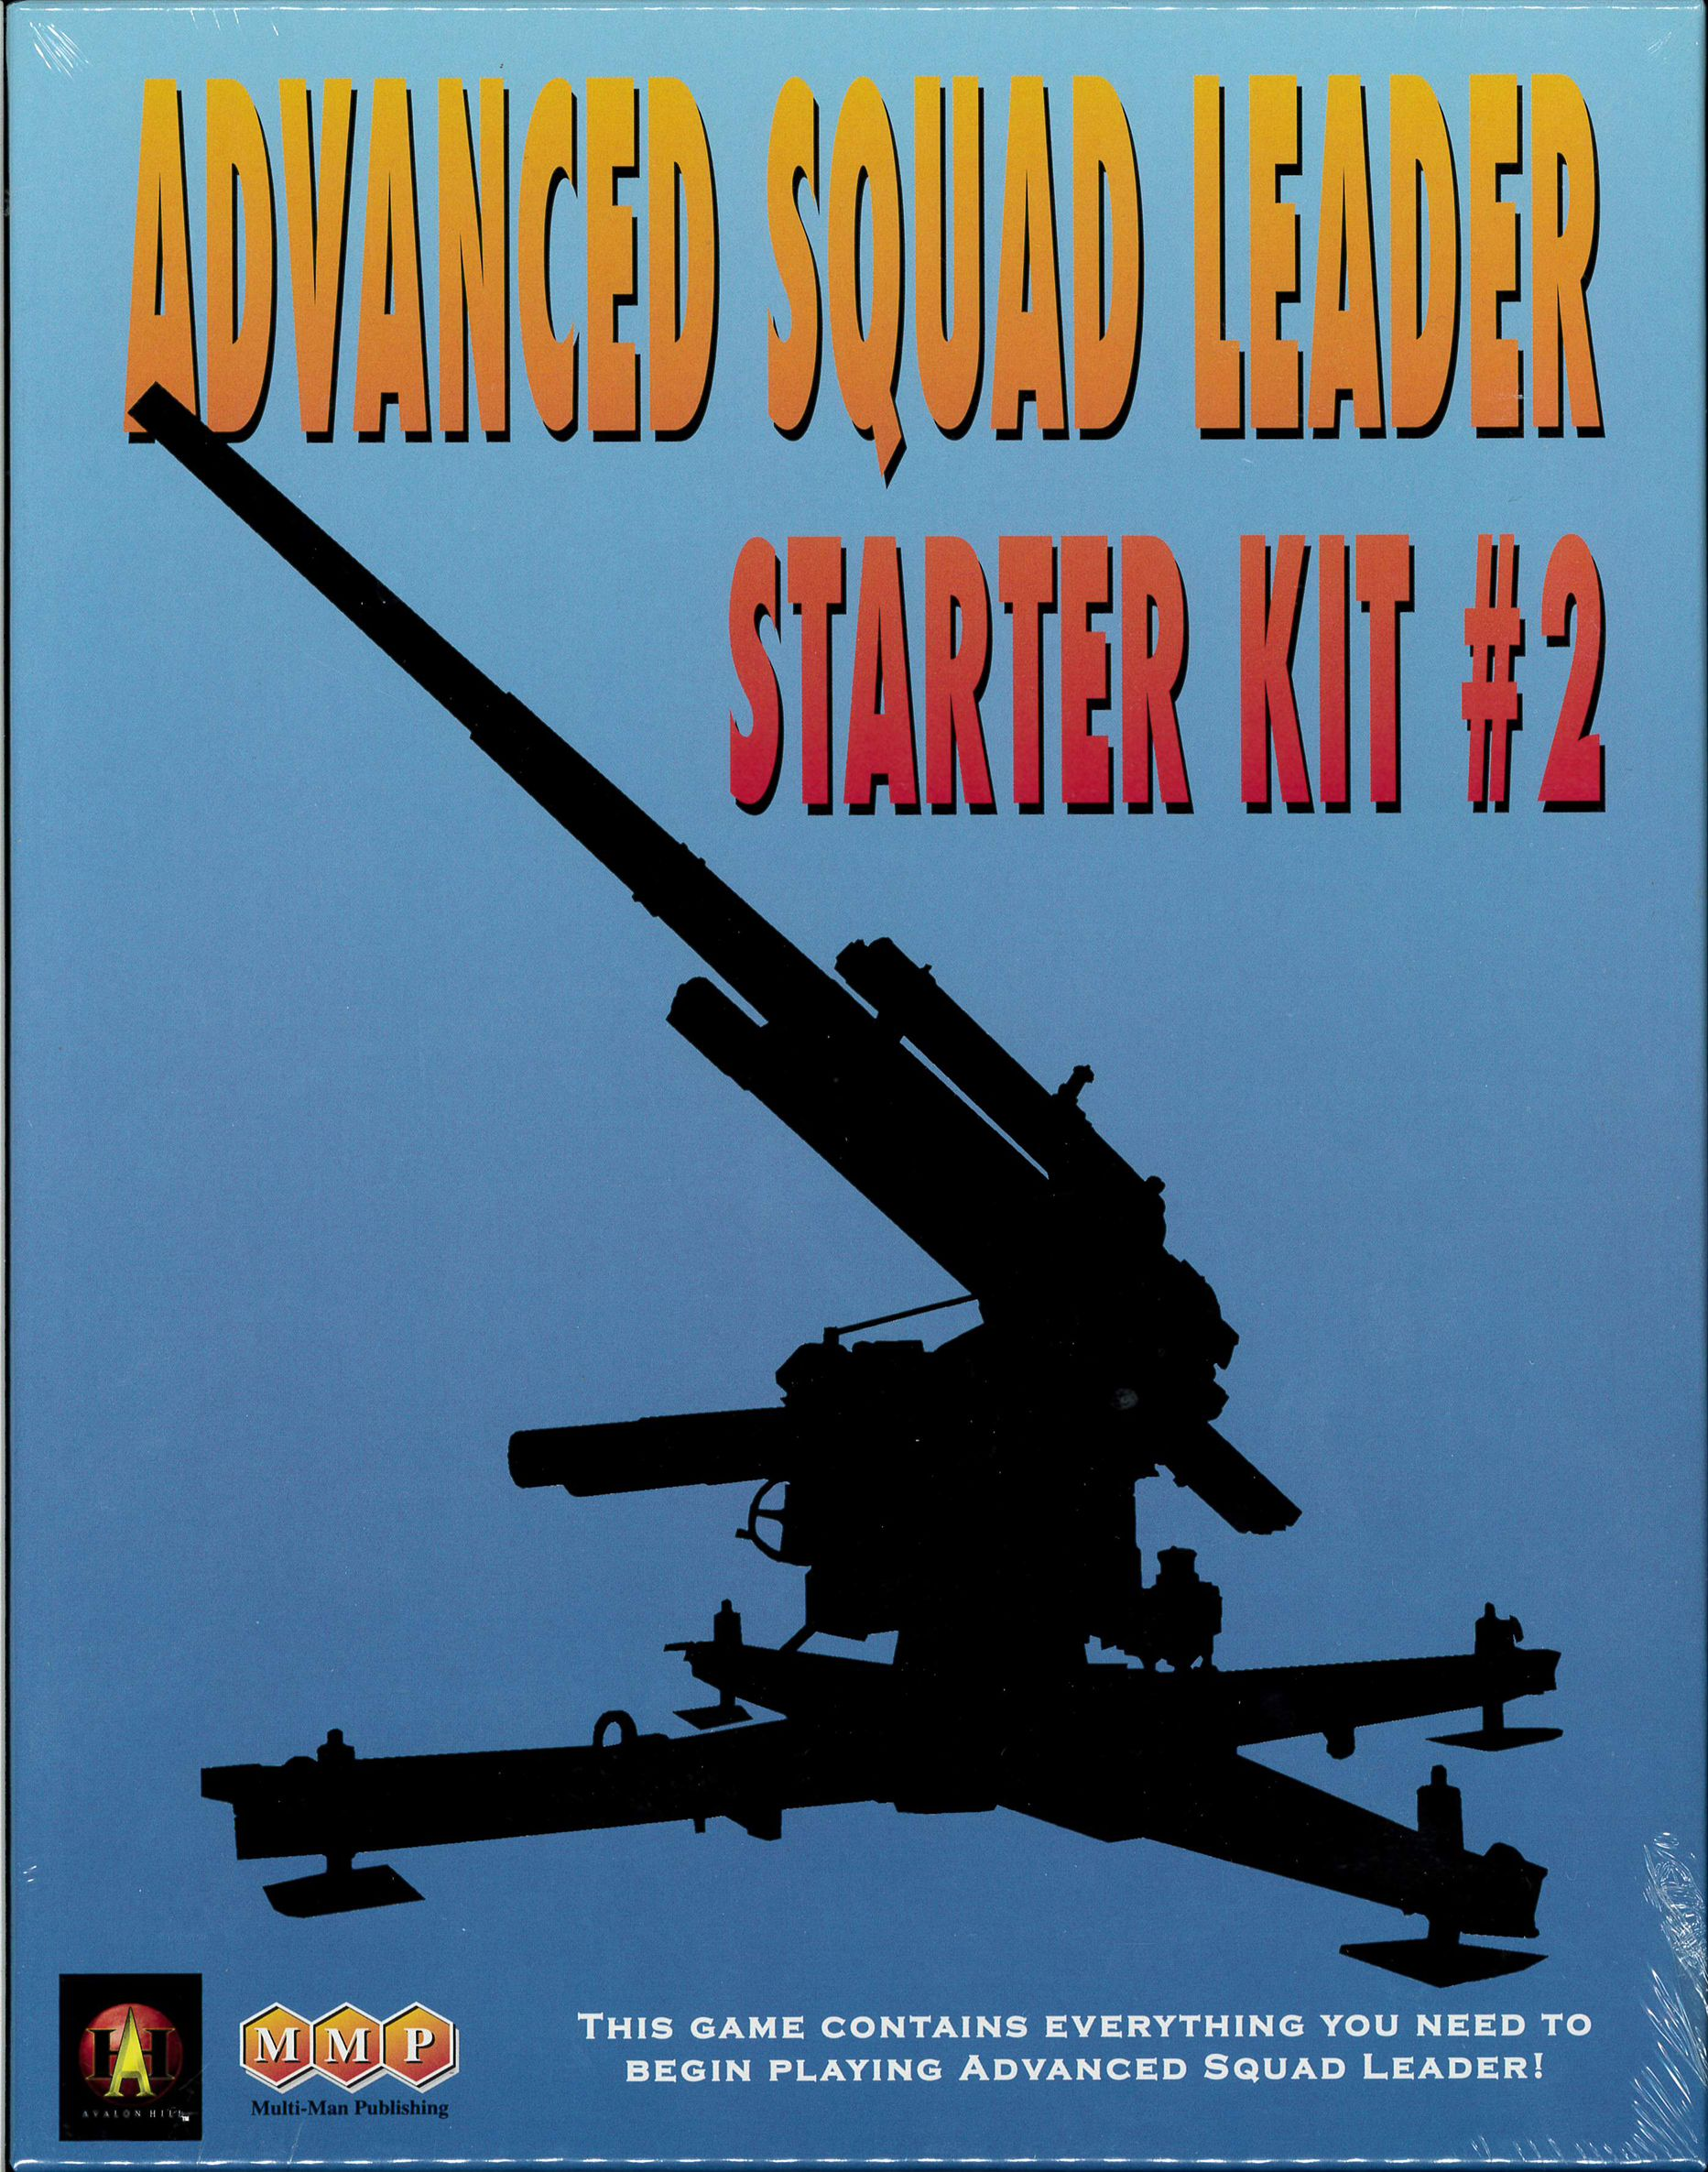 Main image for Advanced Squad Leader: Starter Kit #2 board game